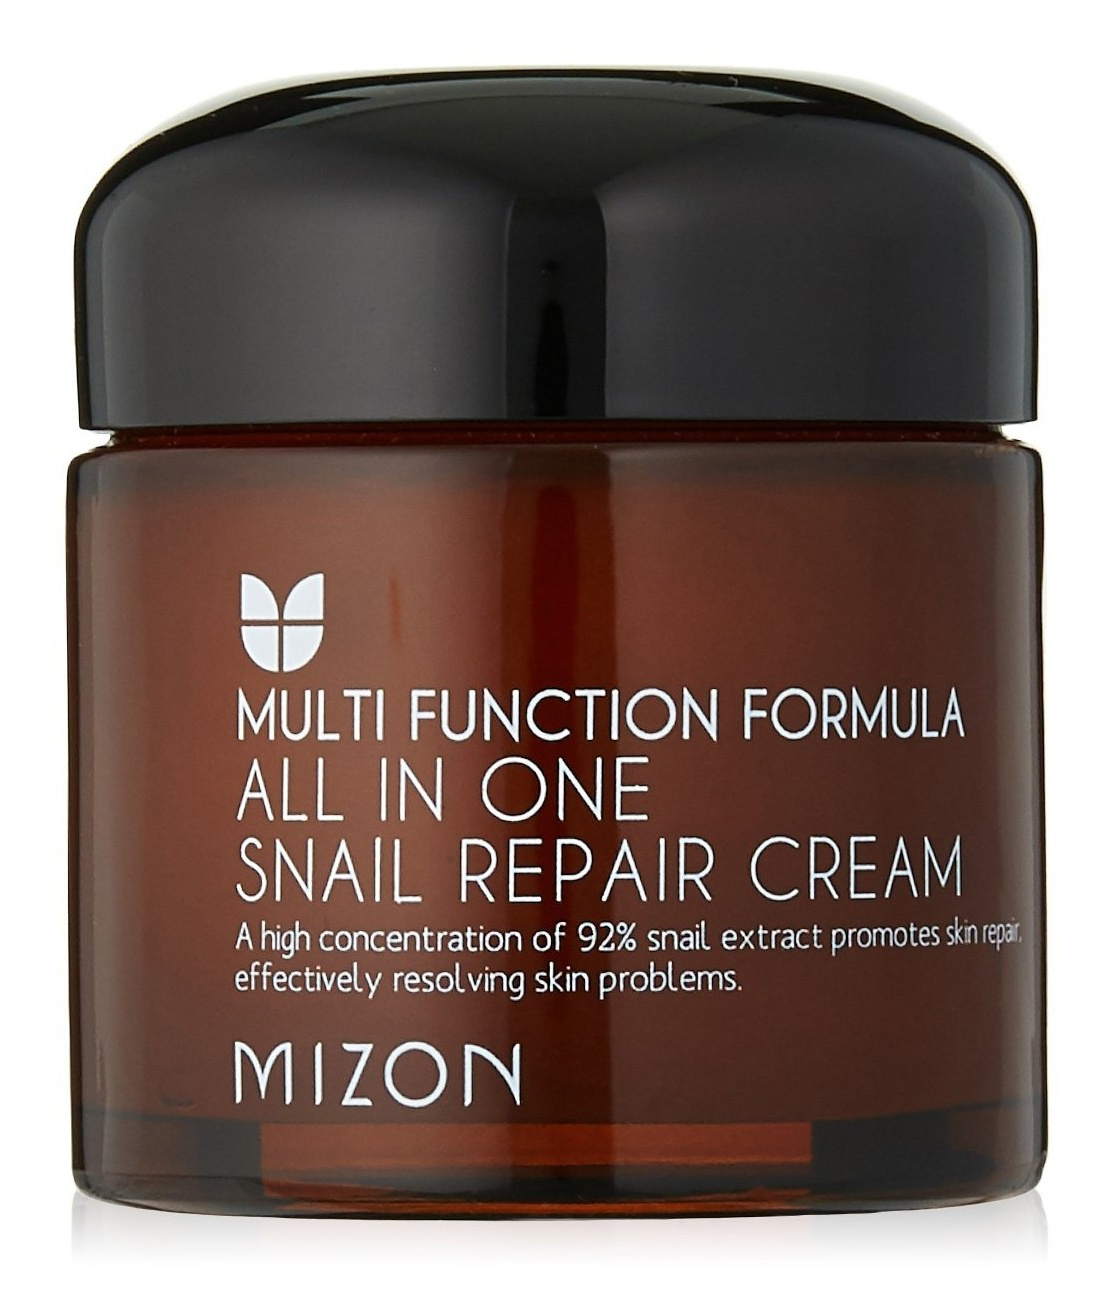 Mizon All In One Snail Repair Cream